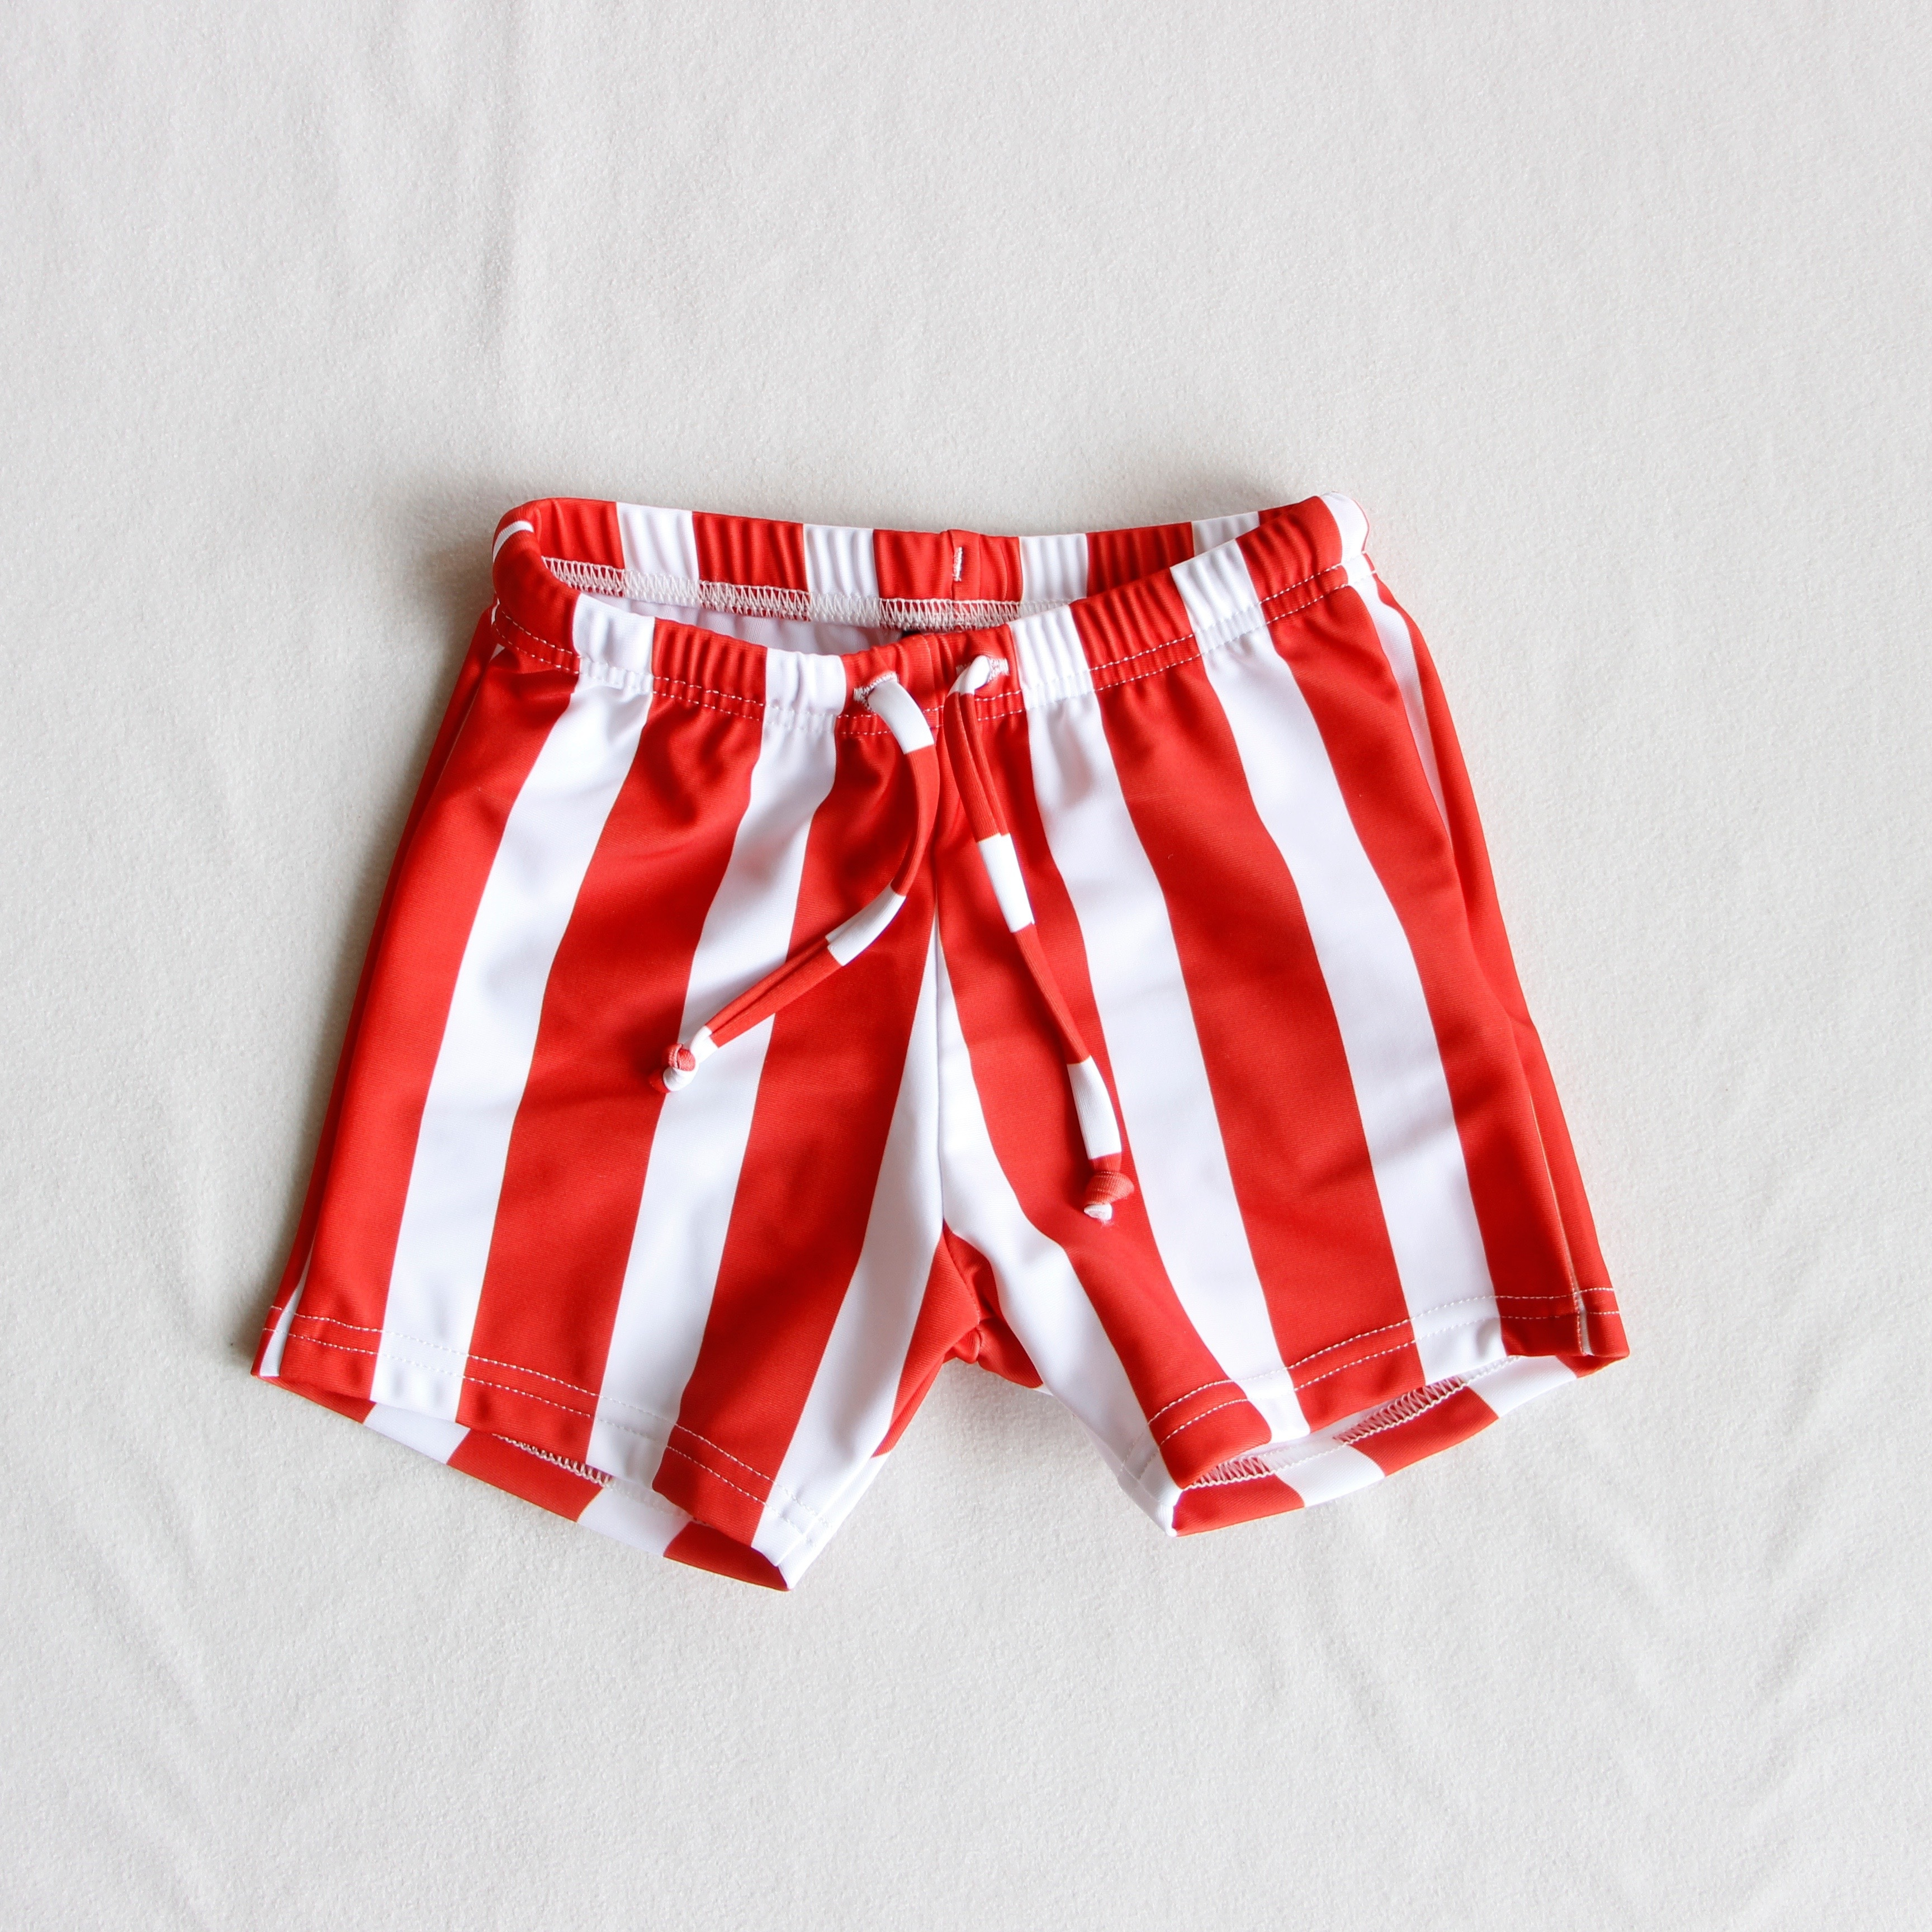 《WOLF & RITA 2018SS》CARLOS swimshorts / red stripes / 2-8Y